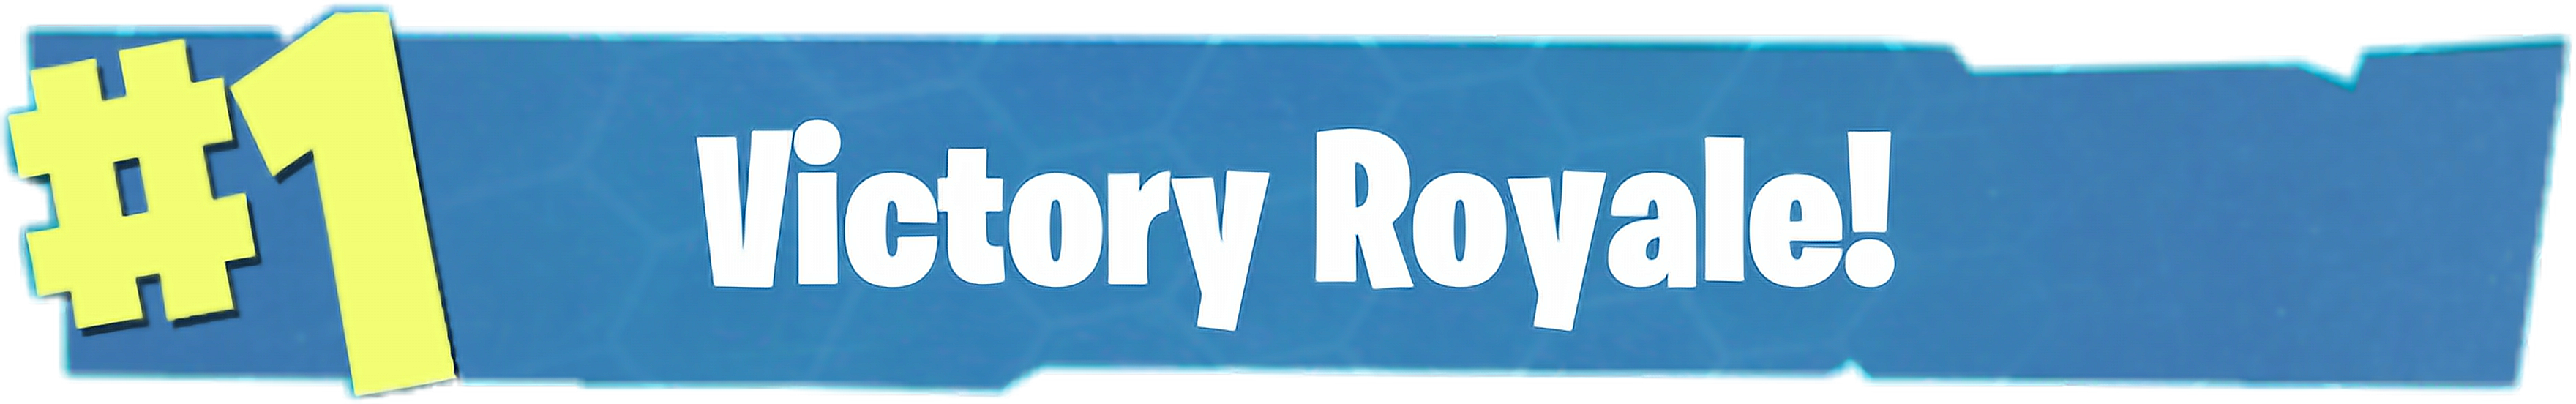 Fortnite victory royale png. Hd transparent background free